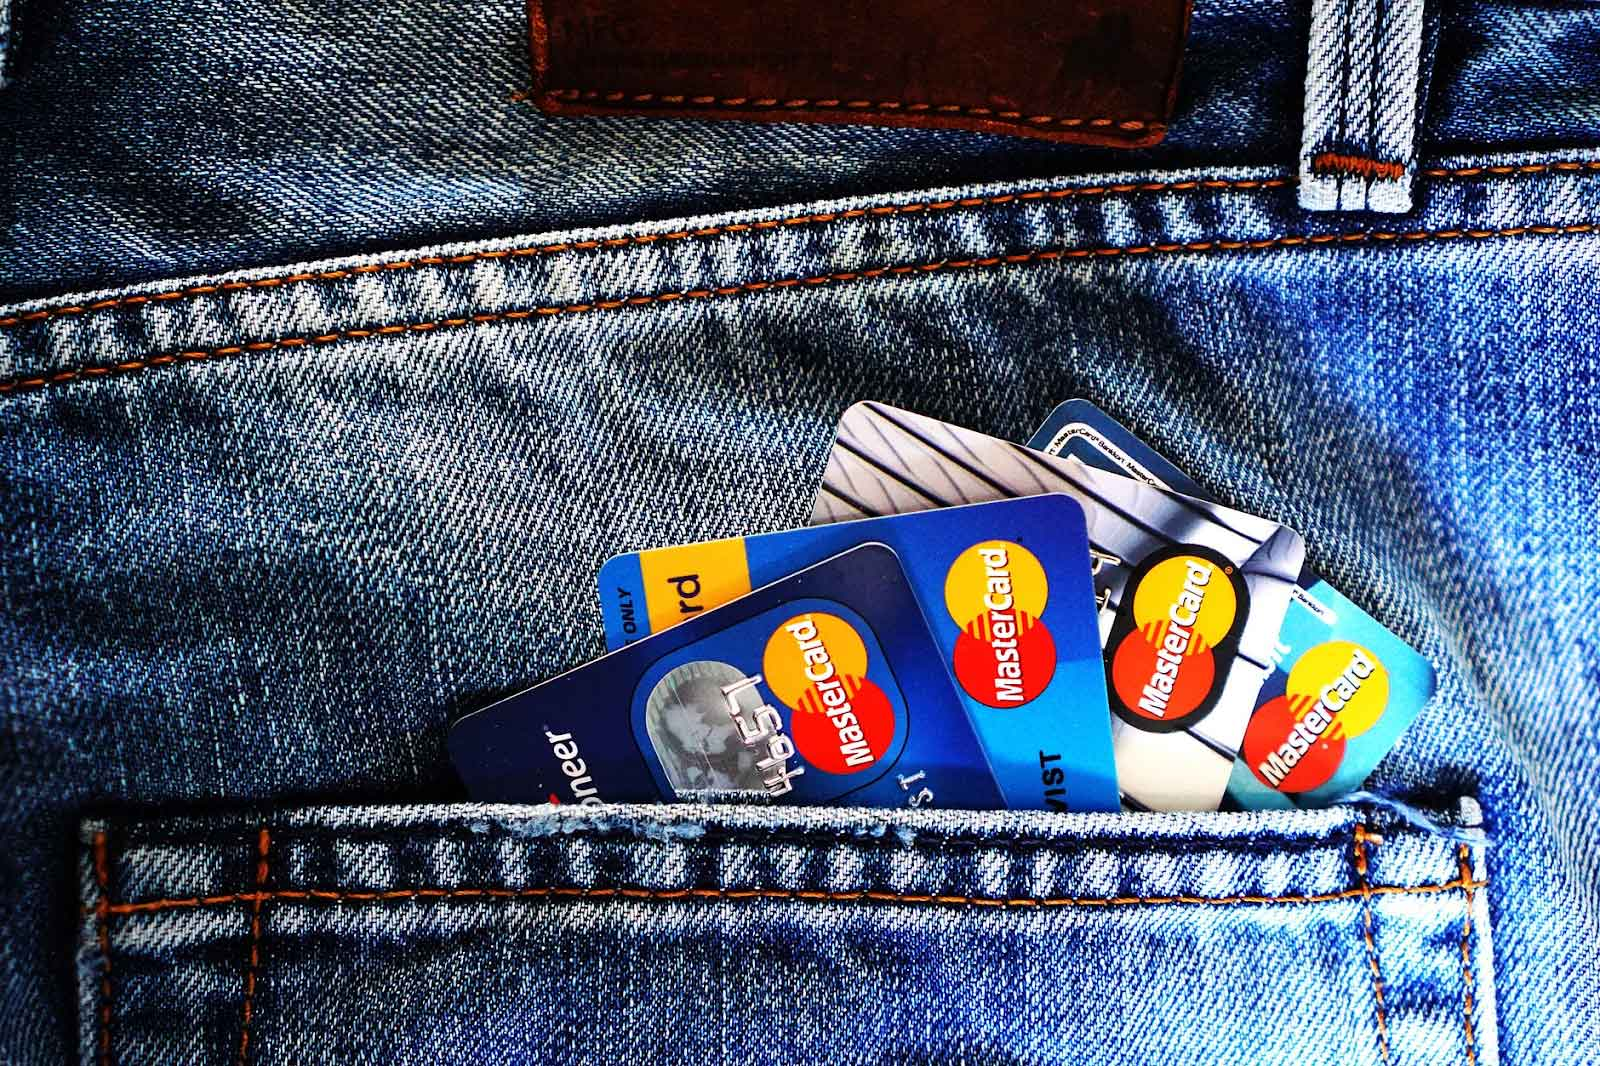 6 Little-known Credit Card Tips